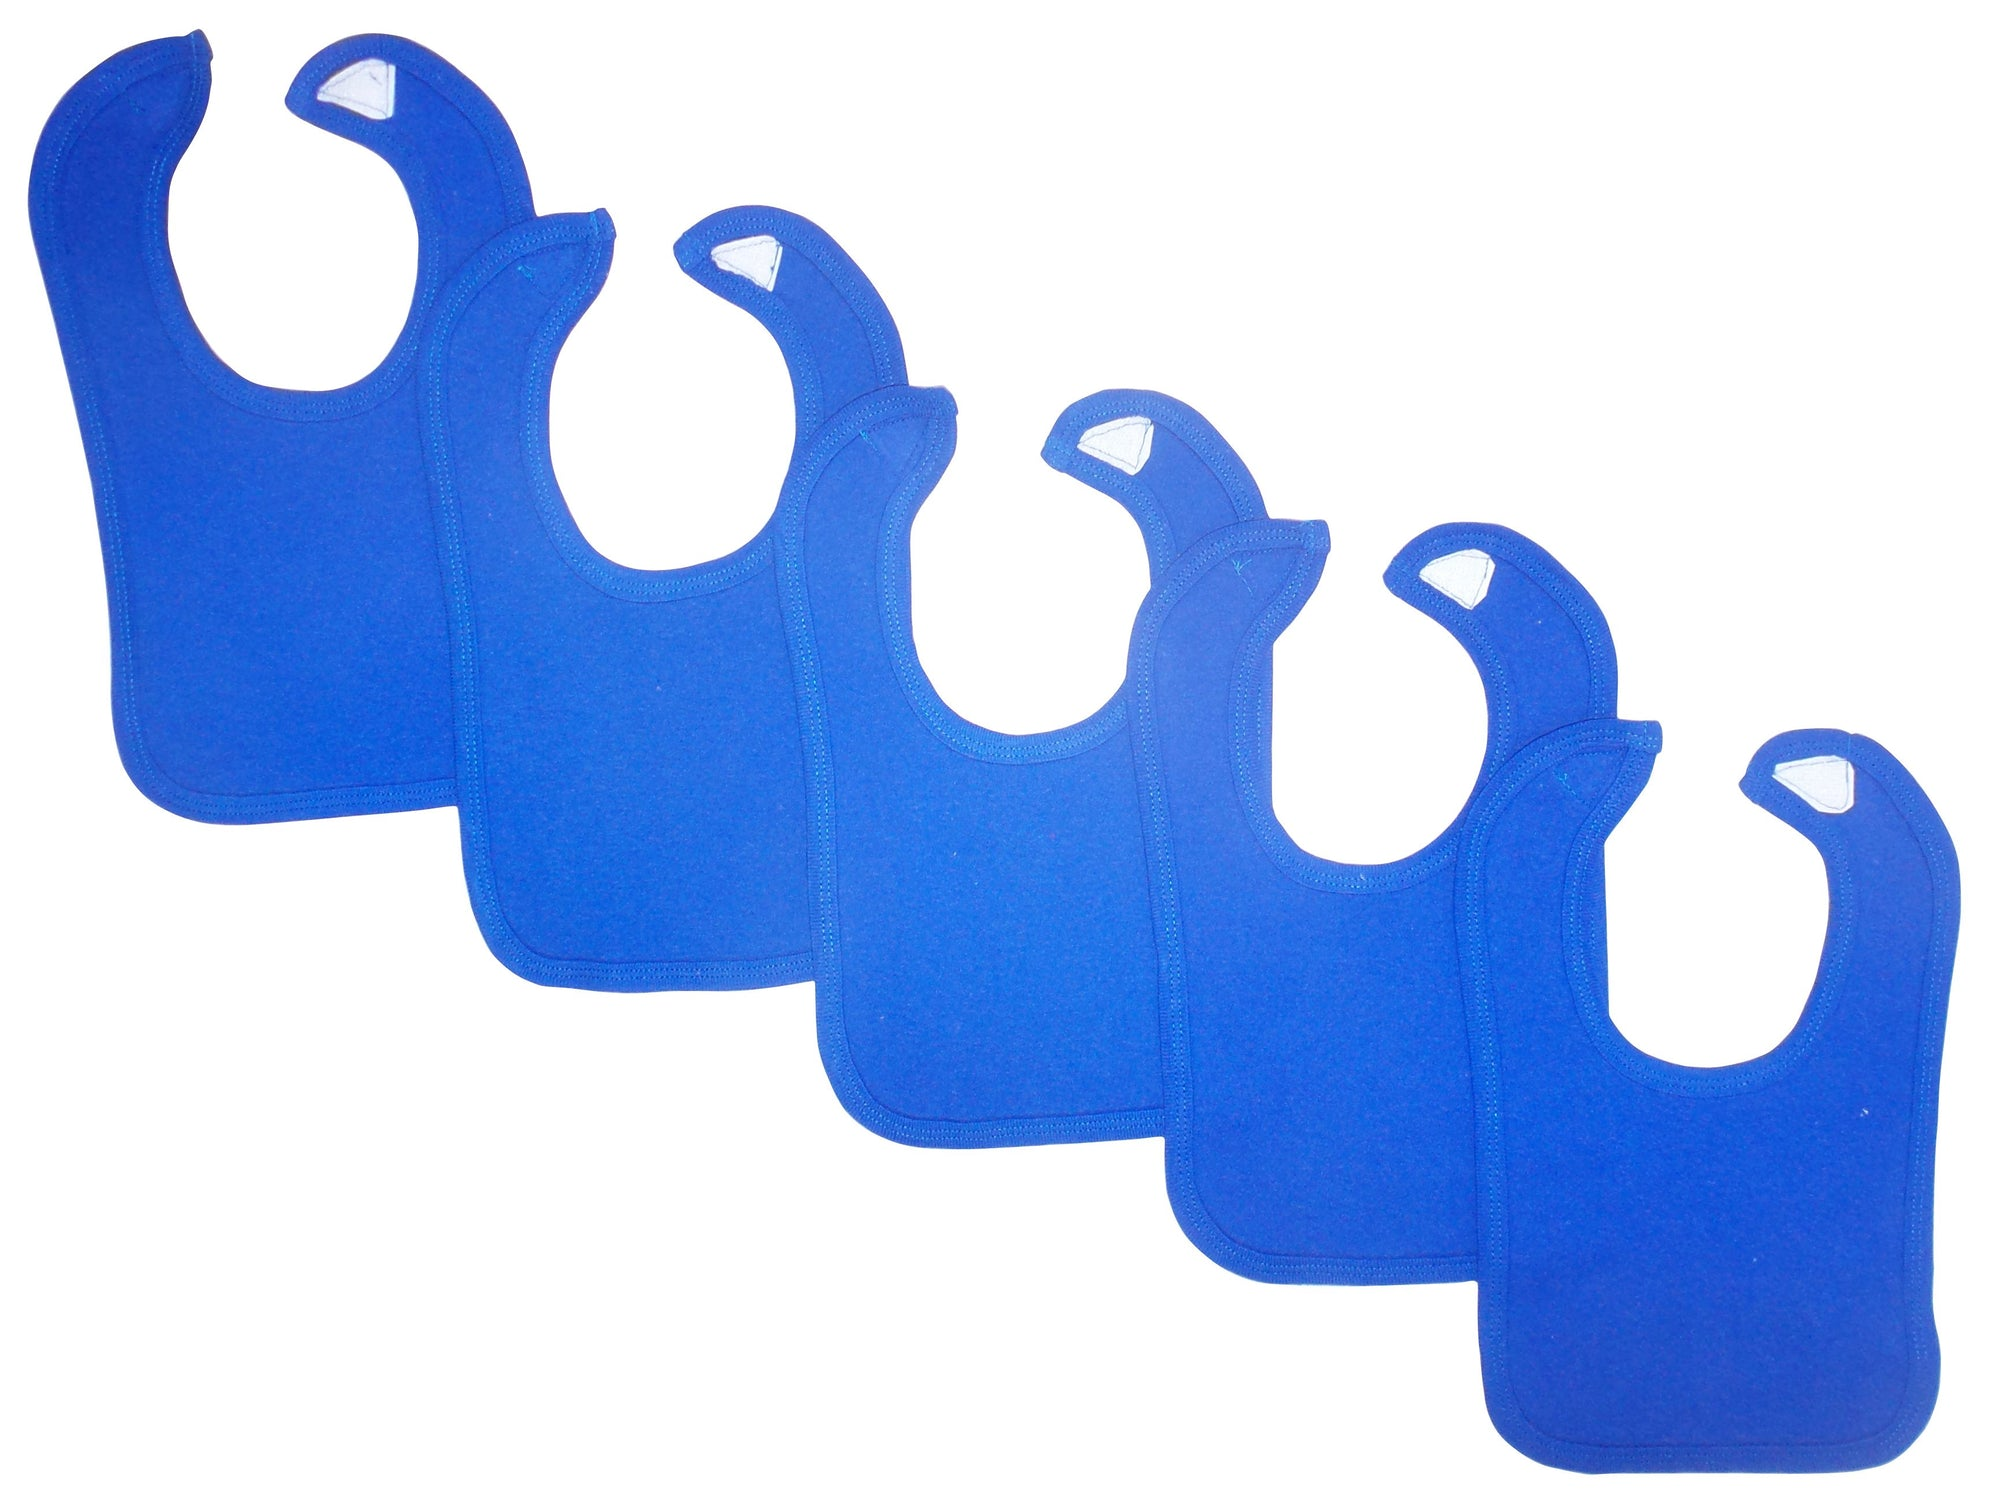 Bambini Blue Baby Bibs (Pack of 5) - Baby World Inc